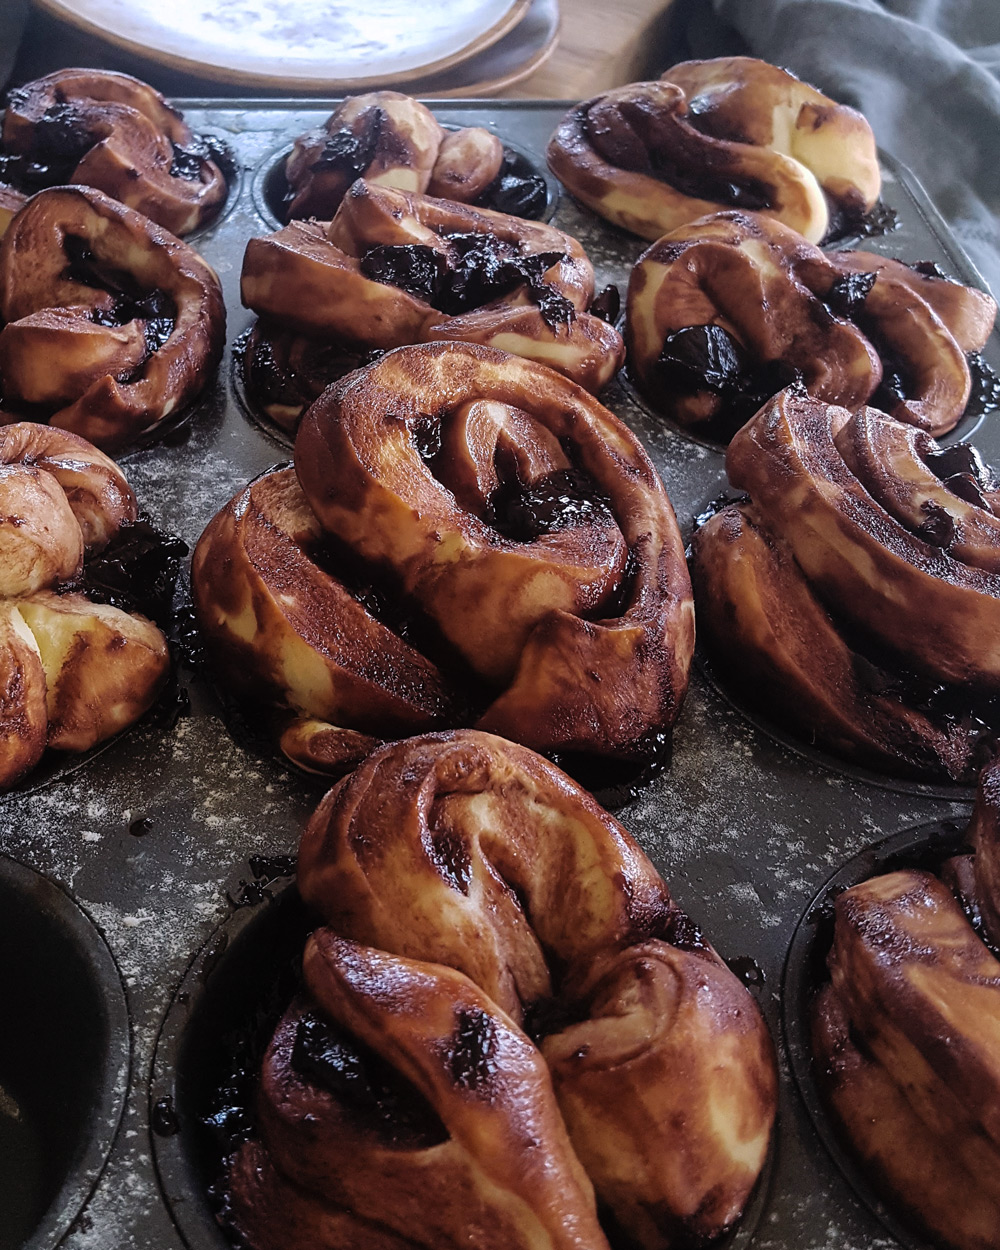 A close up of a tray of baked Cherry Chocolate Babka Pull Apart Muffins.